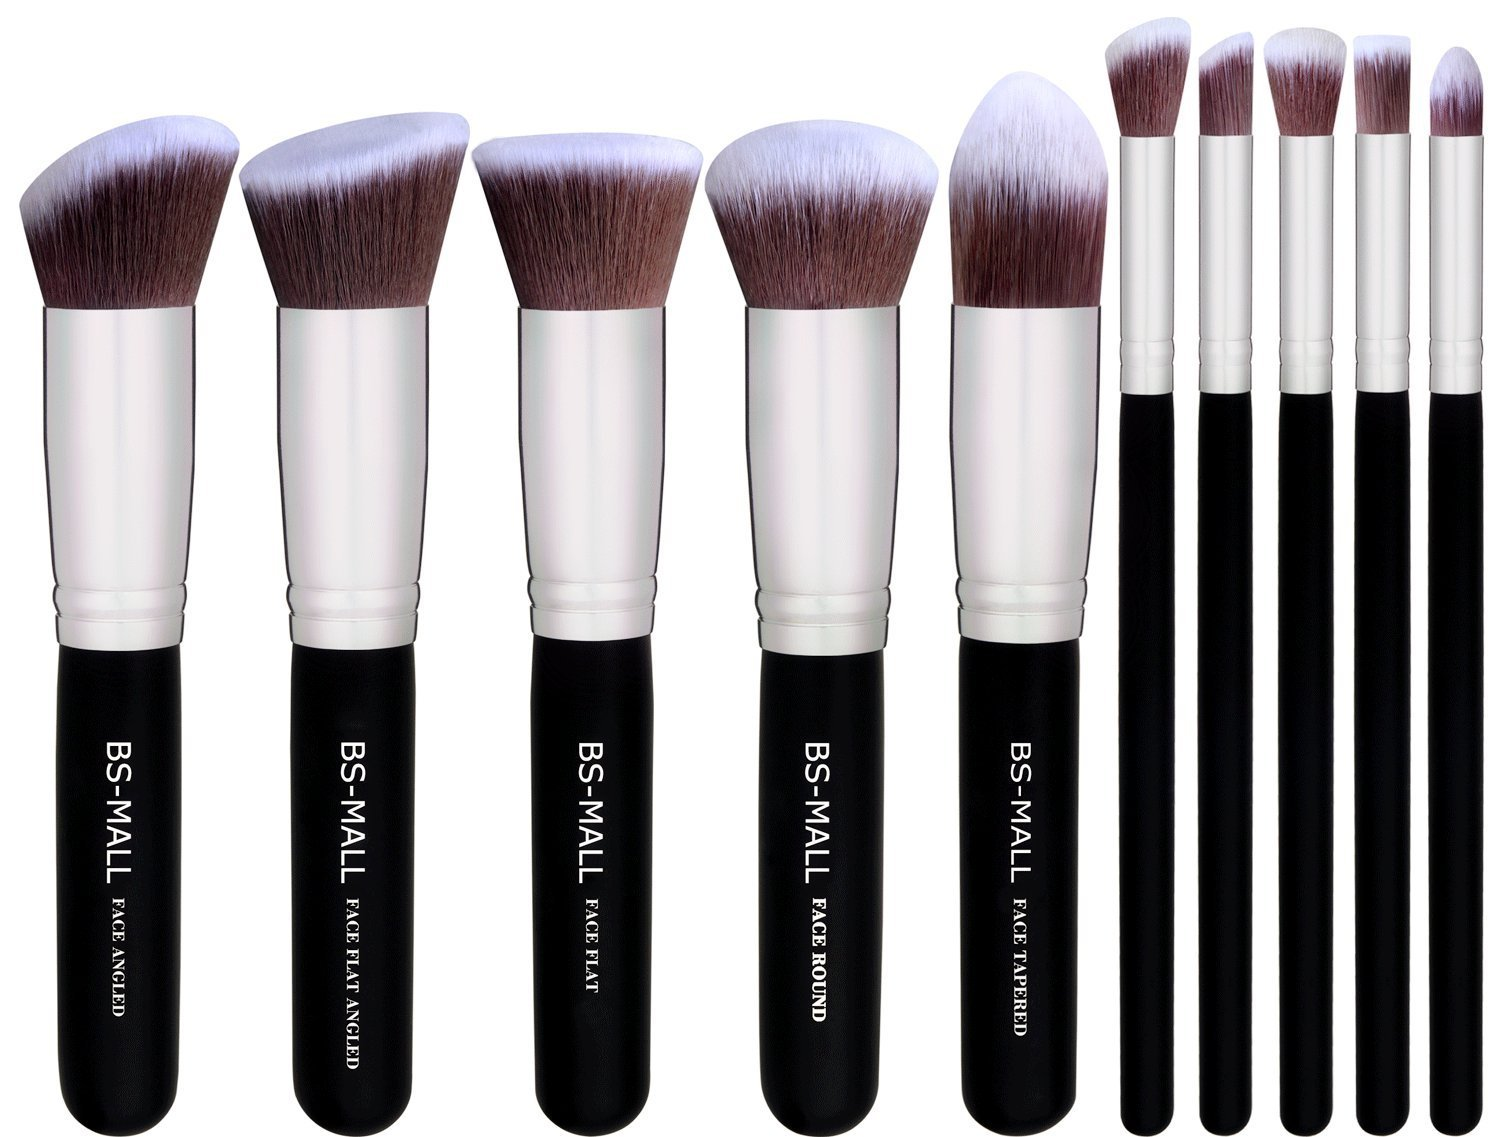 Inexpensive Quality Makeup Brushes